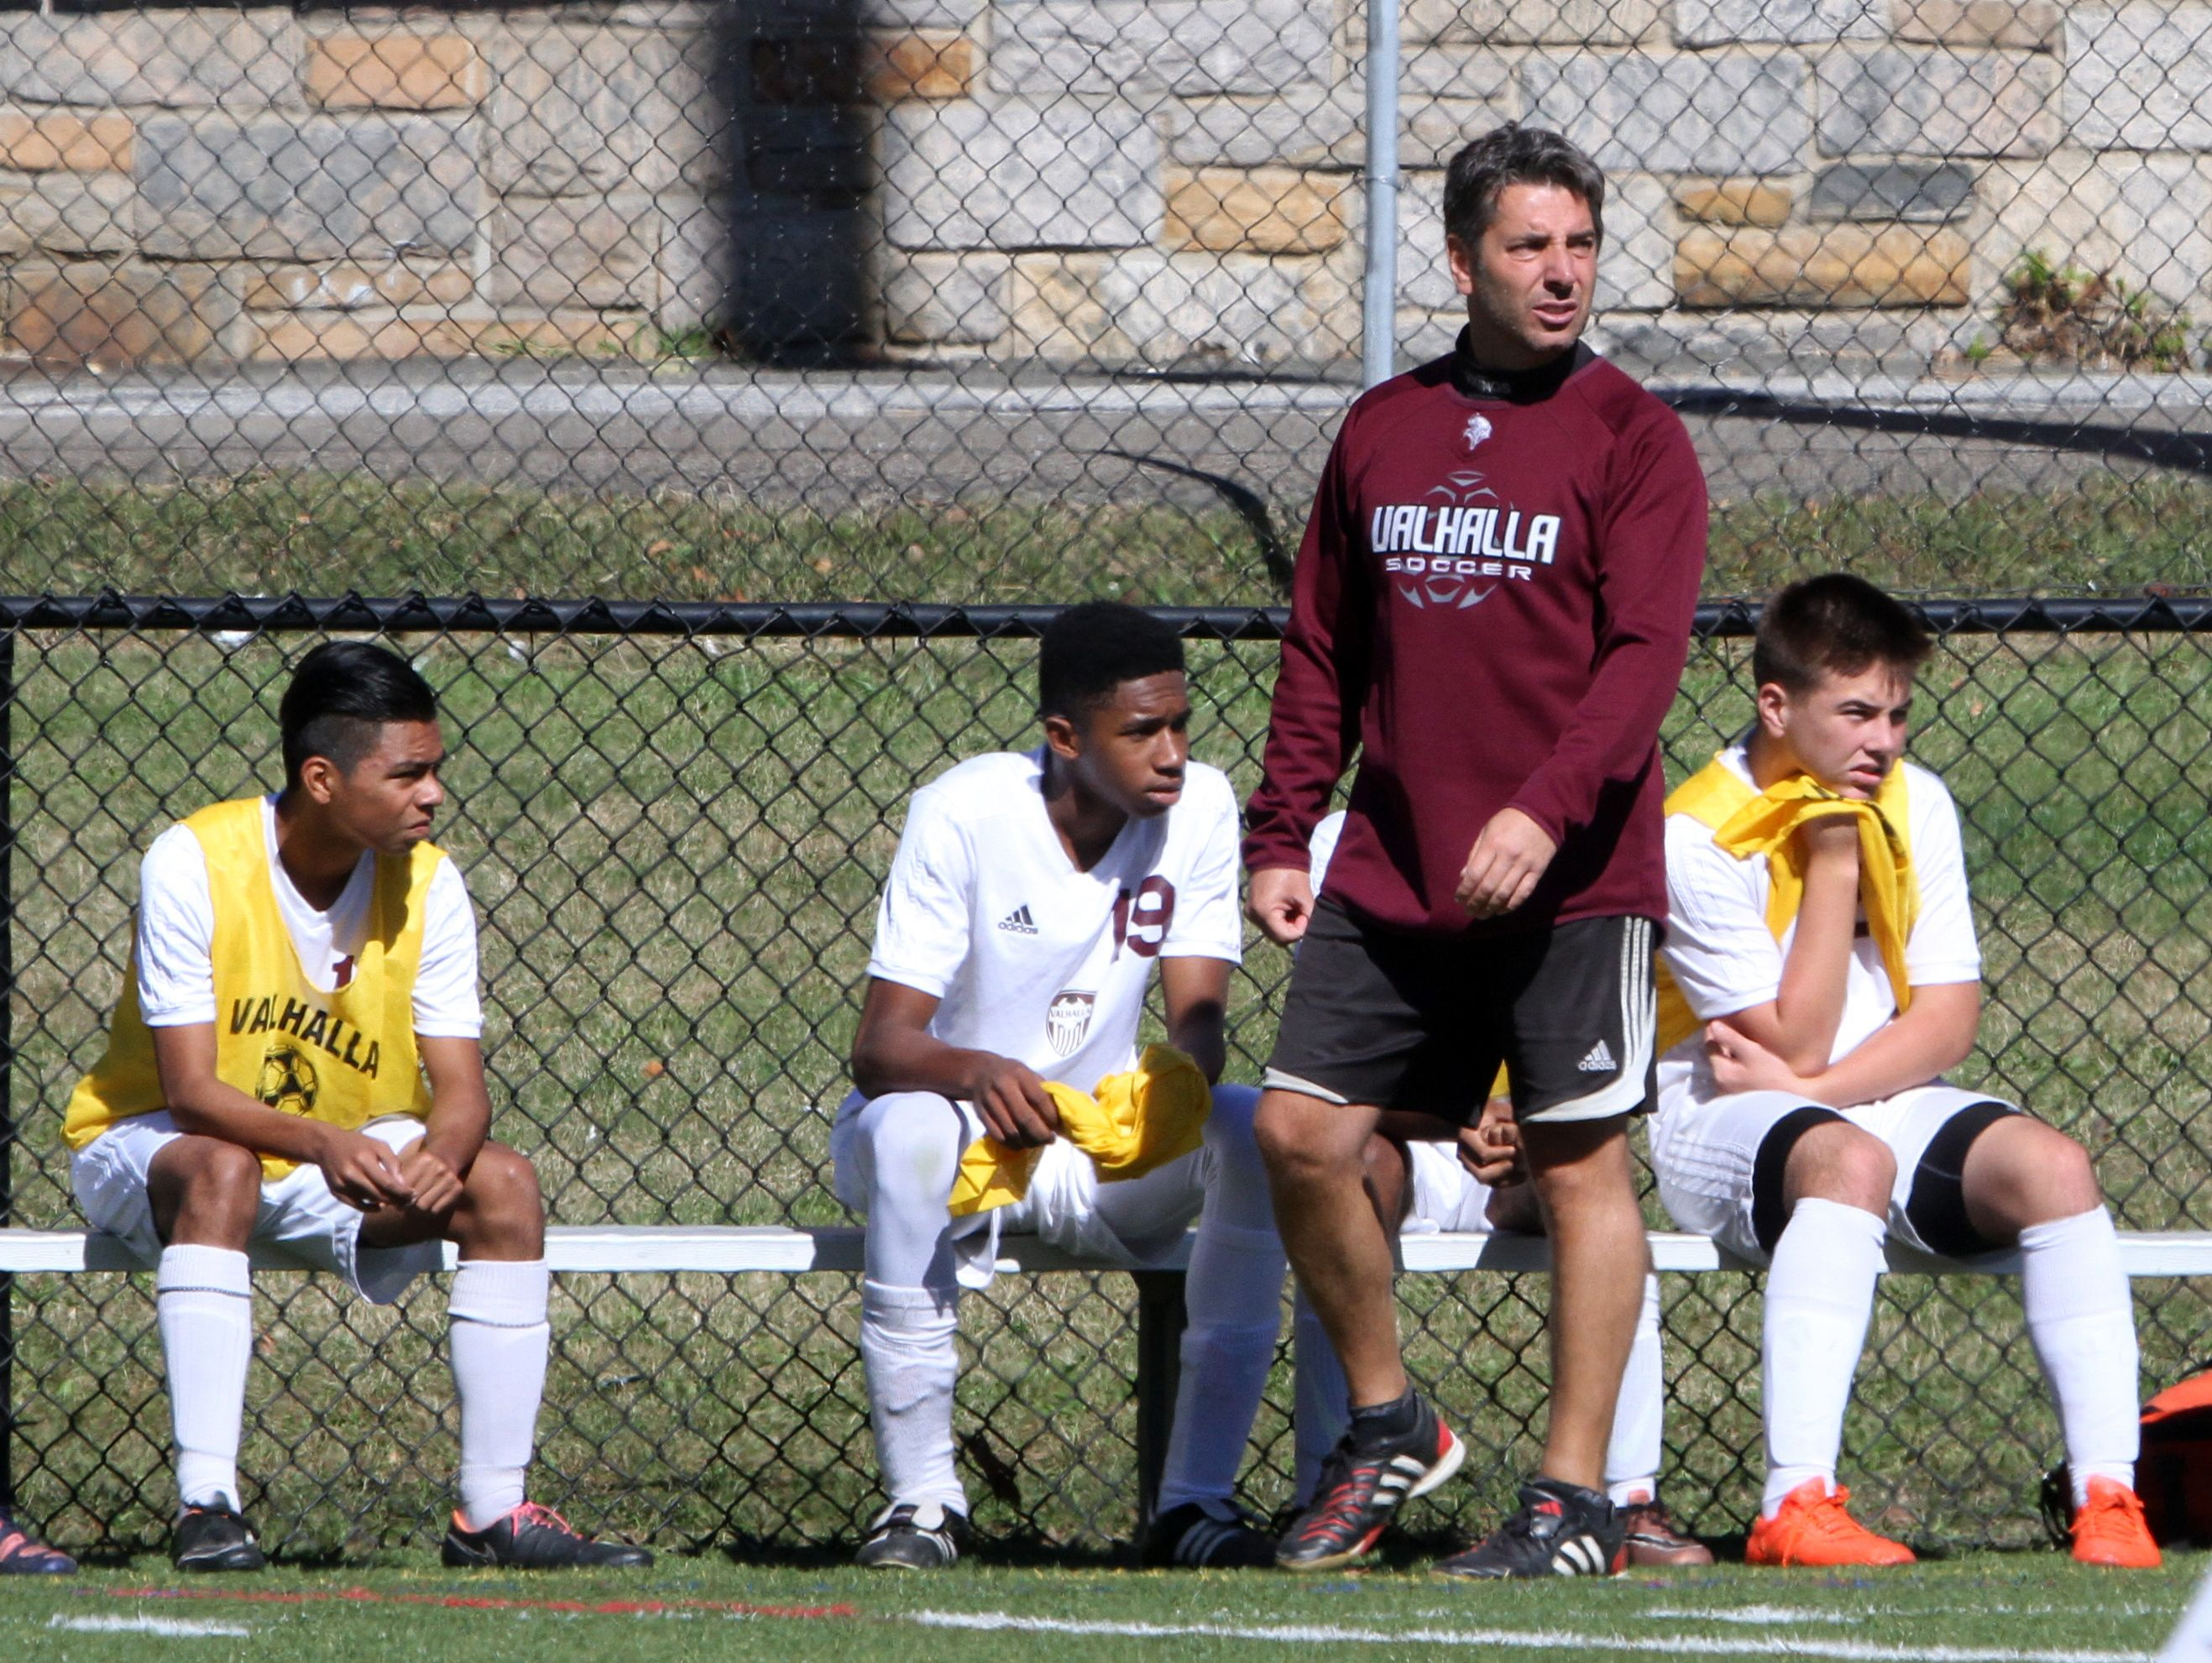 Valhalla soccer coach Sandro Prosperino coaches during a game against Goshen'during the Section 1 vs. Section 9 boys soccer challenge at Mamaroneck High School Oct. 10, 2016.